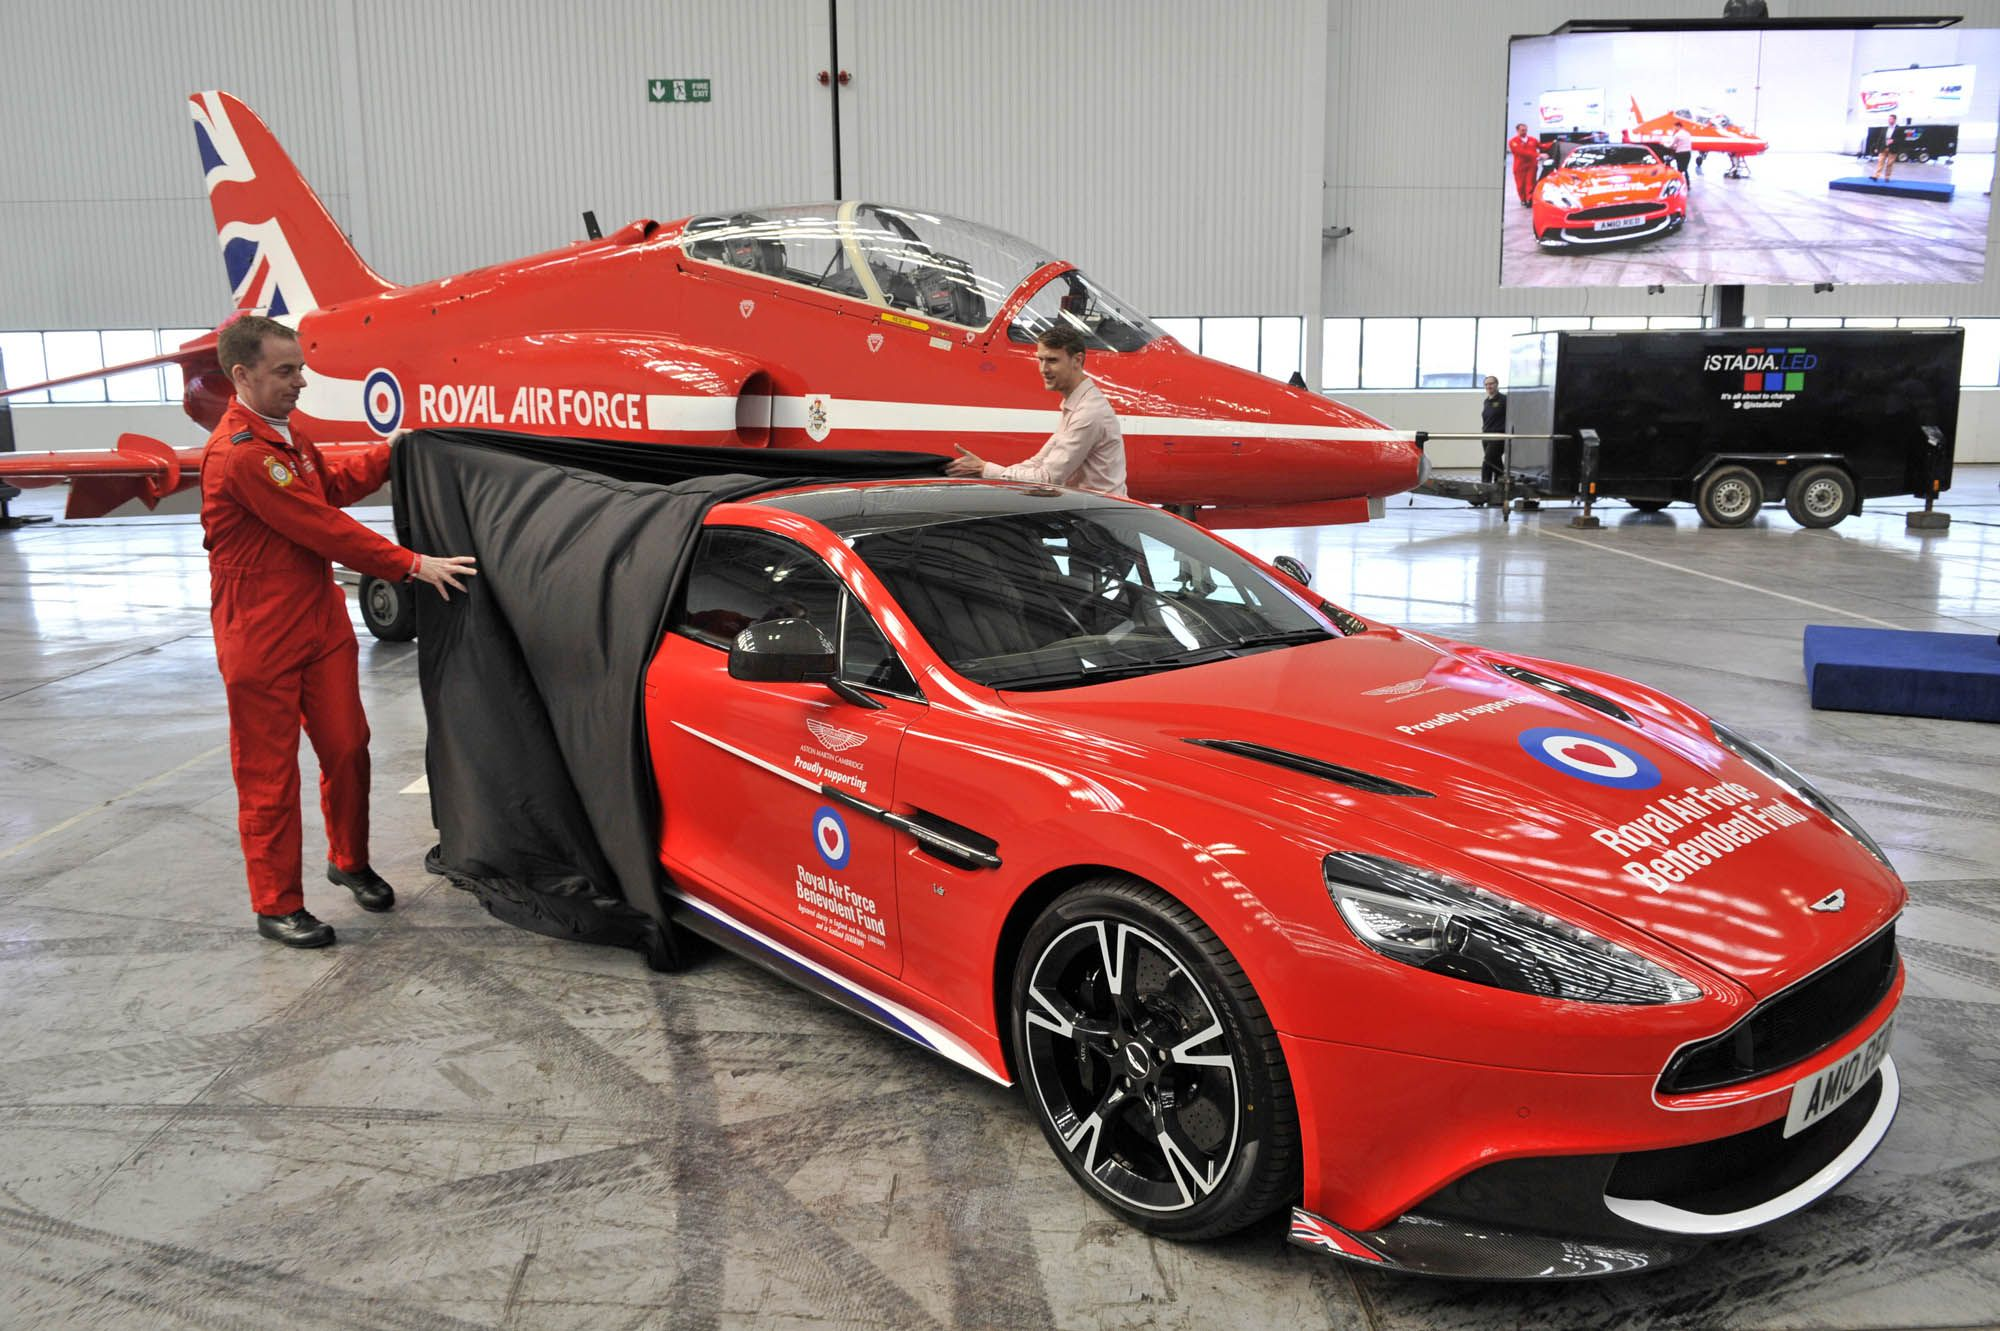 Pin by RAF Benevolent Fund on Aston Martin Red Arrows Car